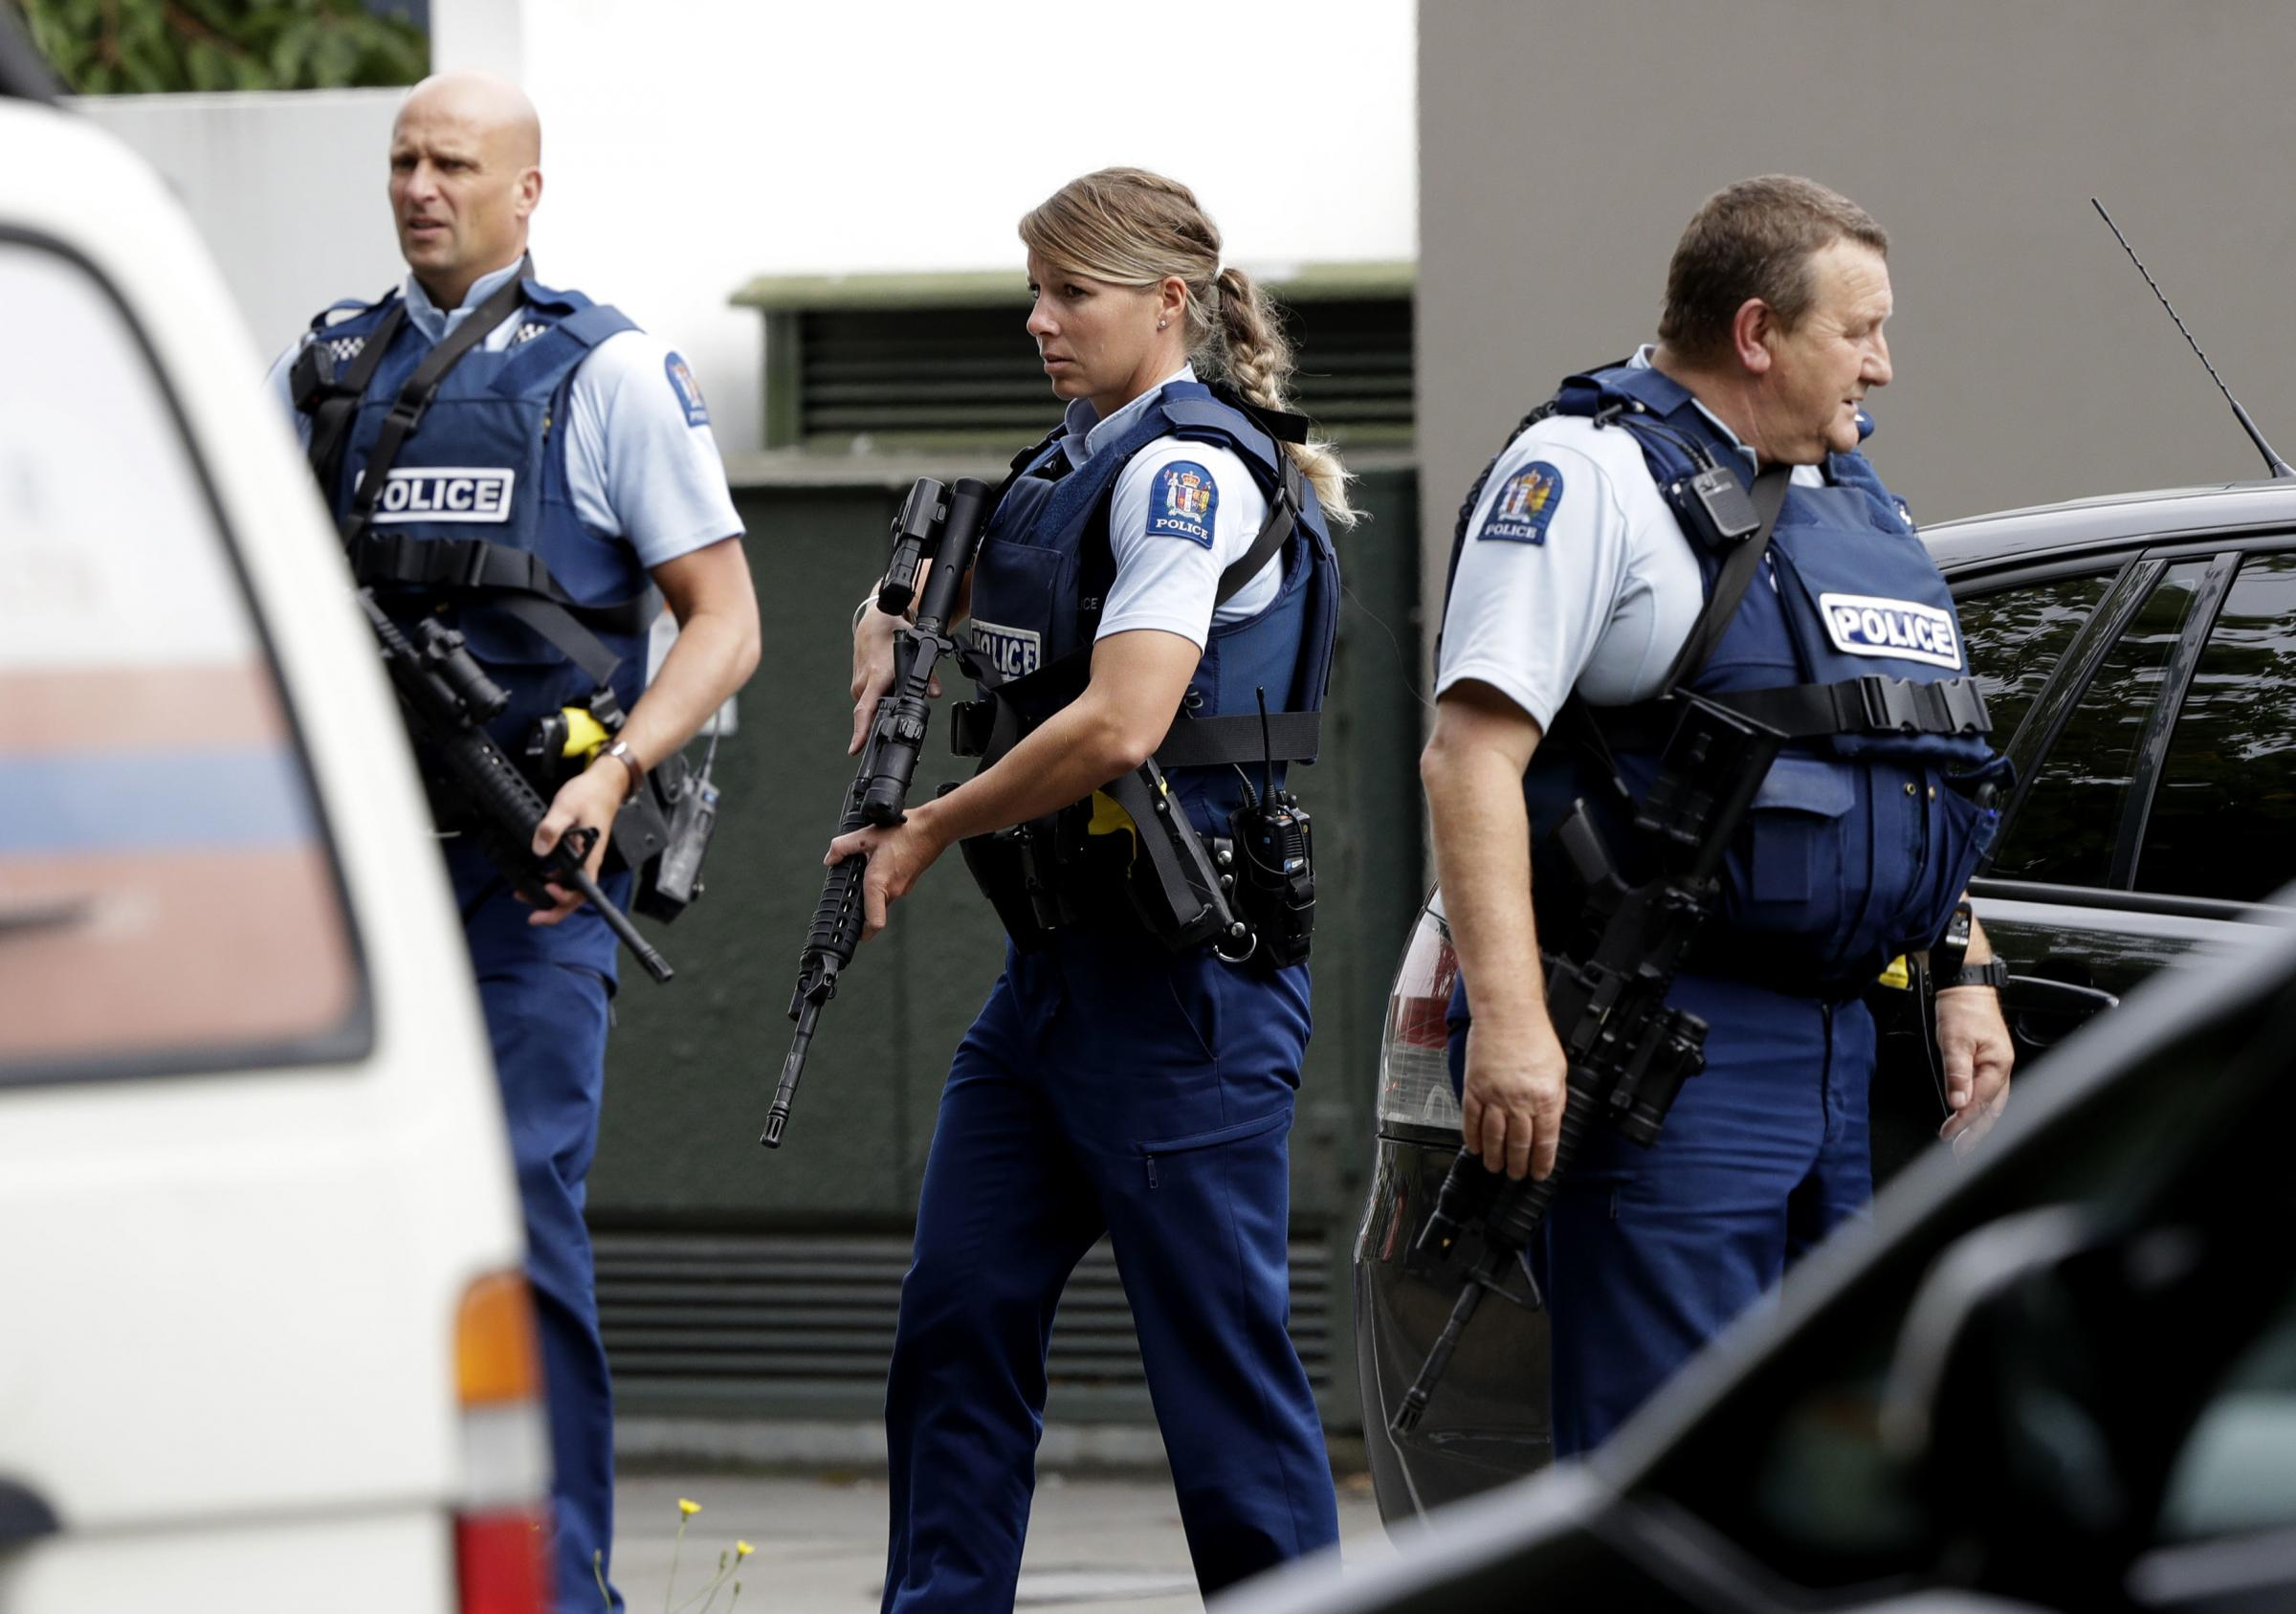 Armed police patrol outside a mosque in central Christchurch, New Zealand, Friday, March 15, 2019. A witness says many people have been killed in a mass shooting at a mosque in the New Zealand city of Christchurch. (AP Photo/Mark Baker)